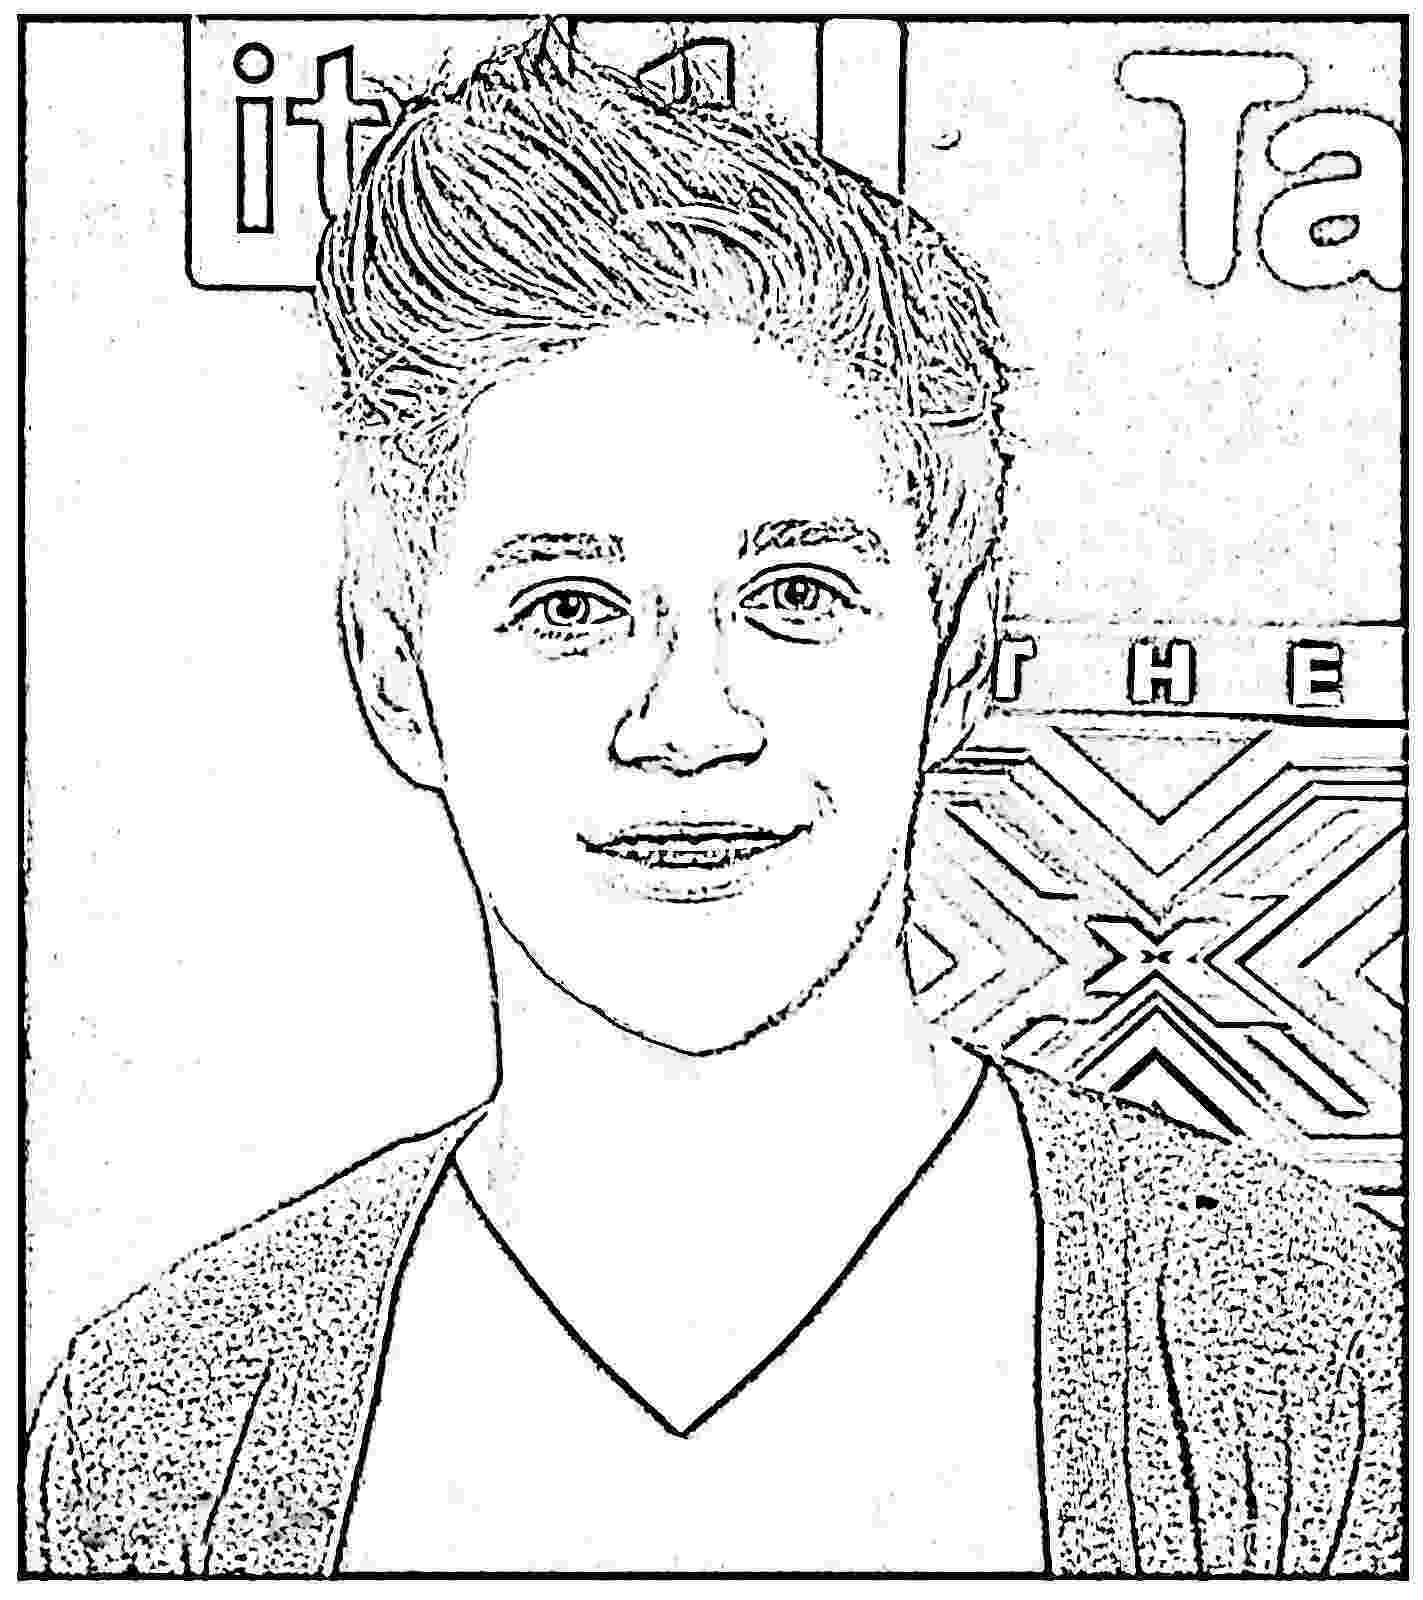 colouring pages for one direction one direction free to color for kids one direction kids one pages direction for colouring